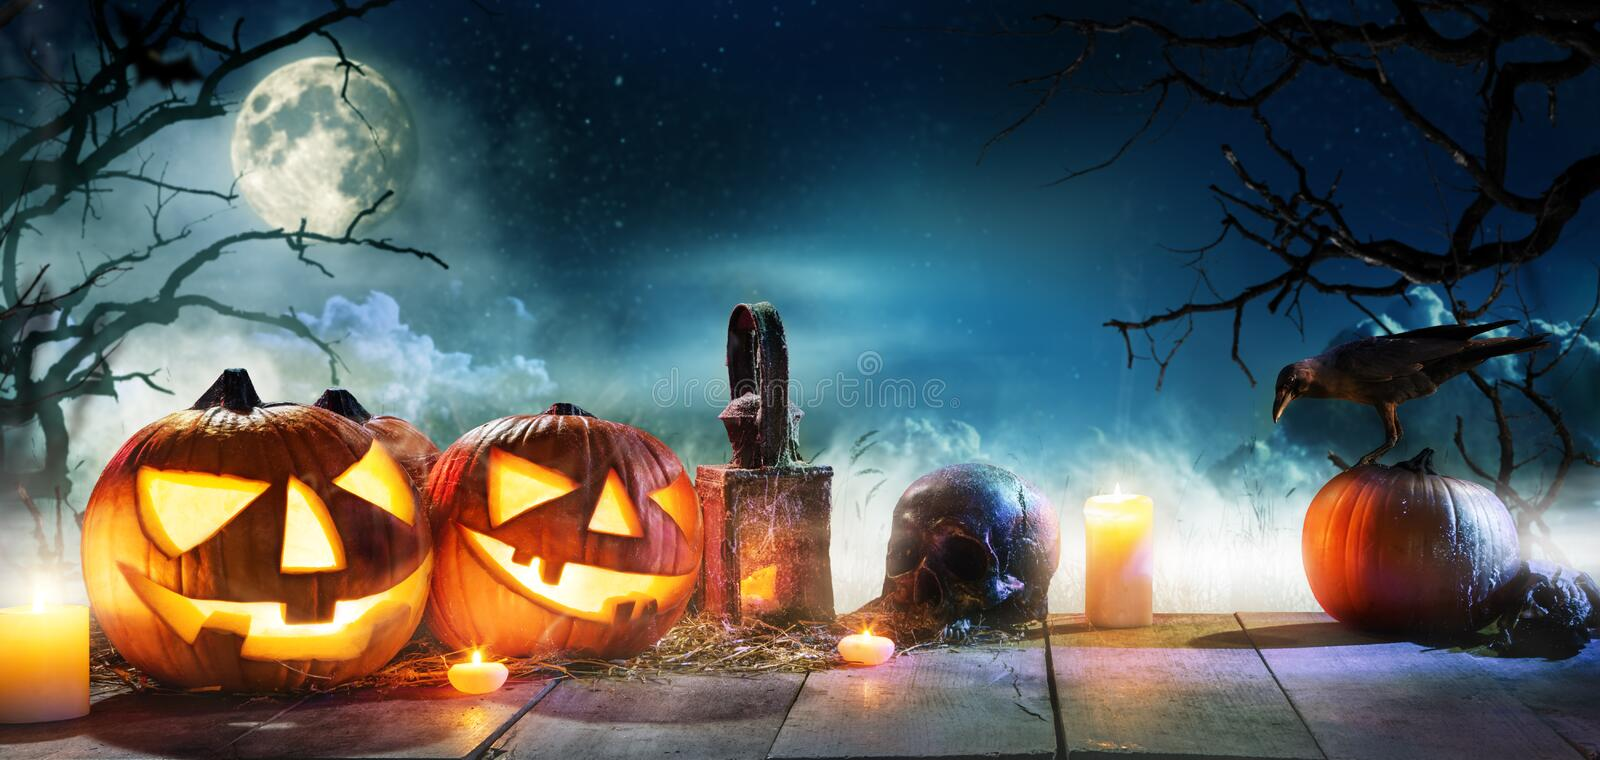 Horror Stock Images - Download 170,603 Royalty Free Photos